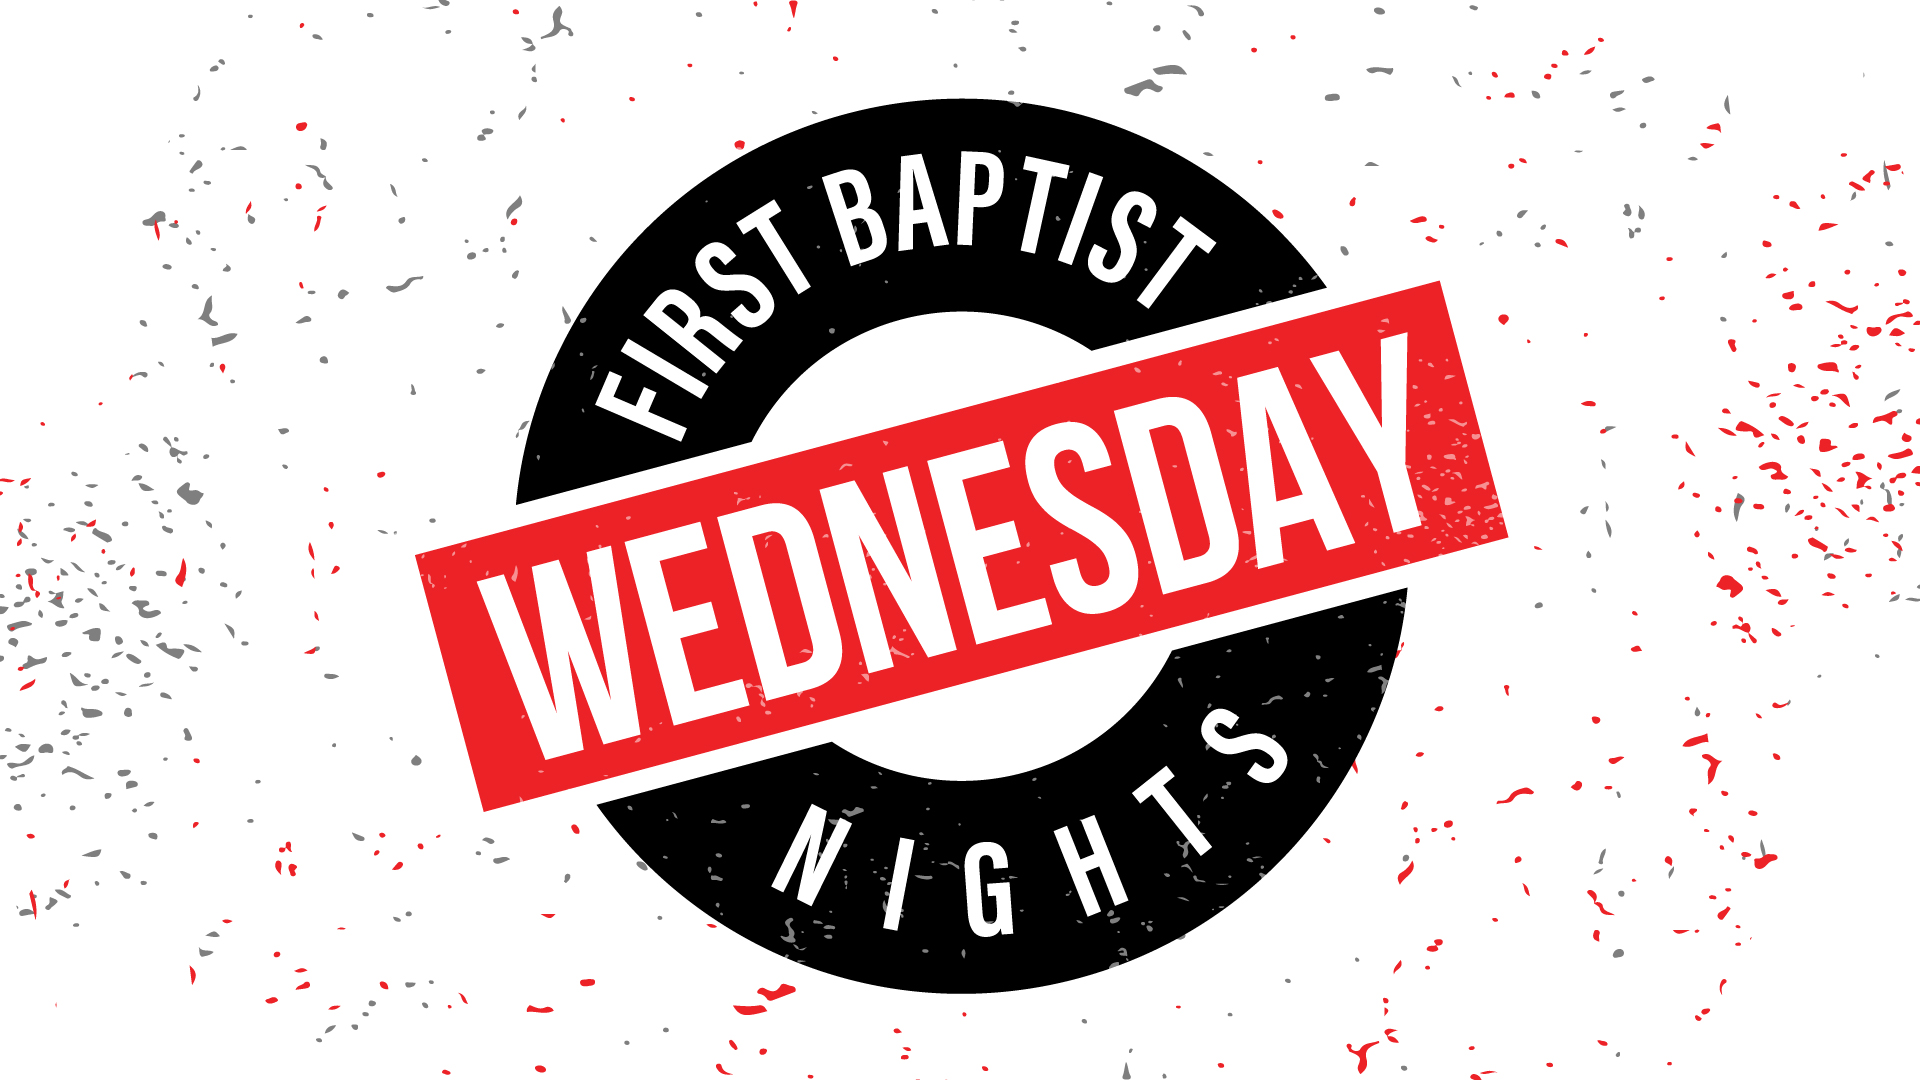 Wednesdays at First Baptist